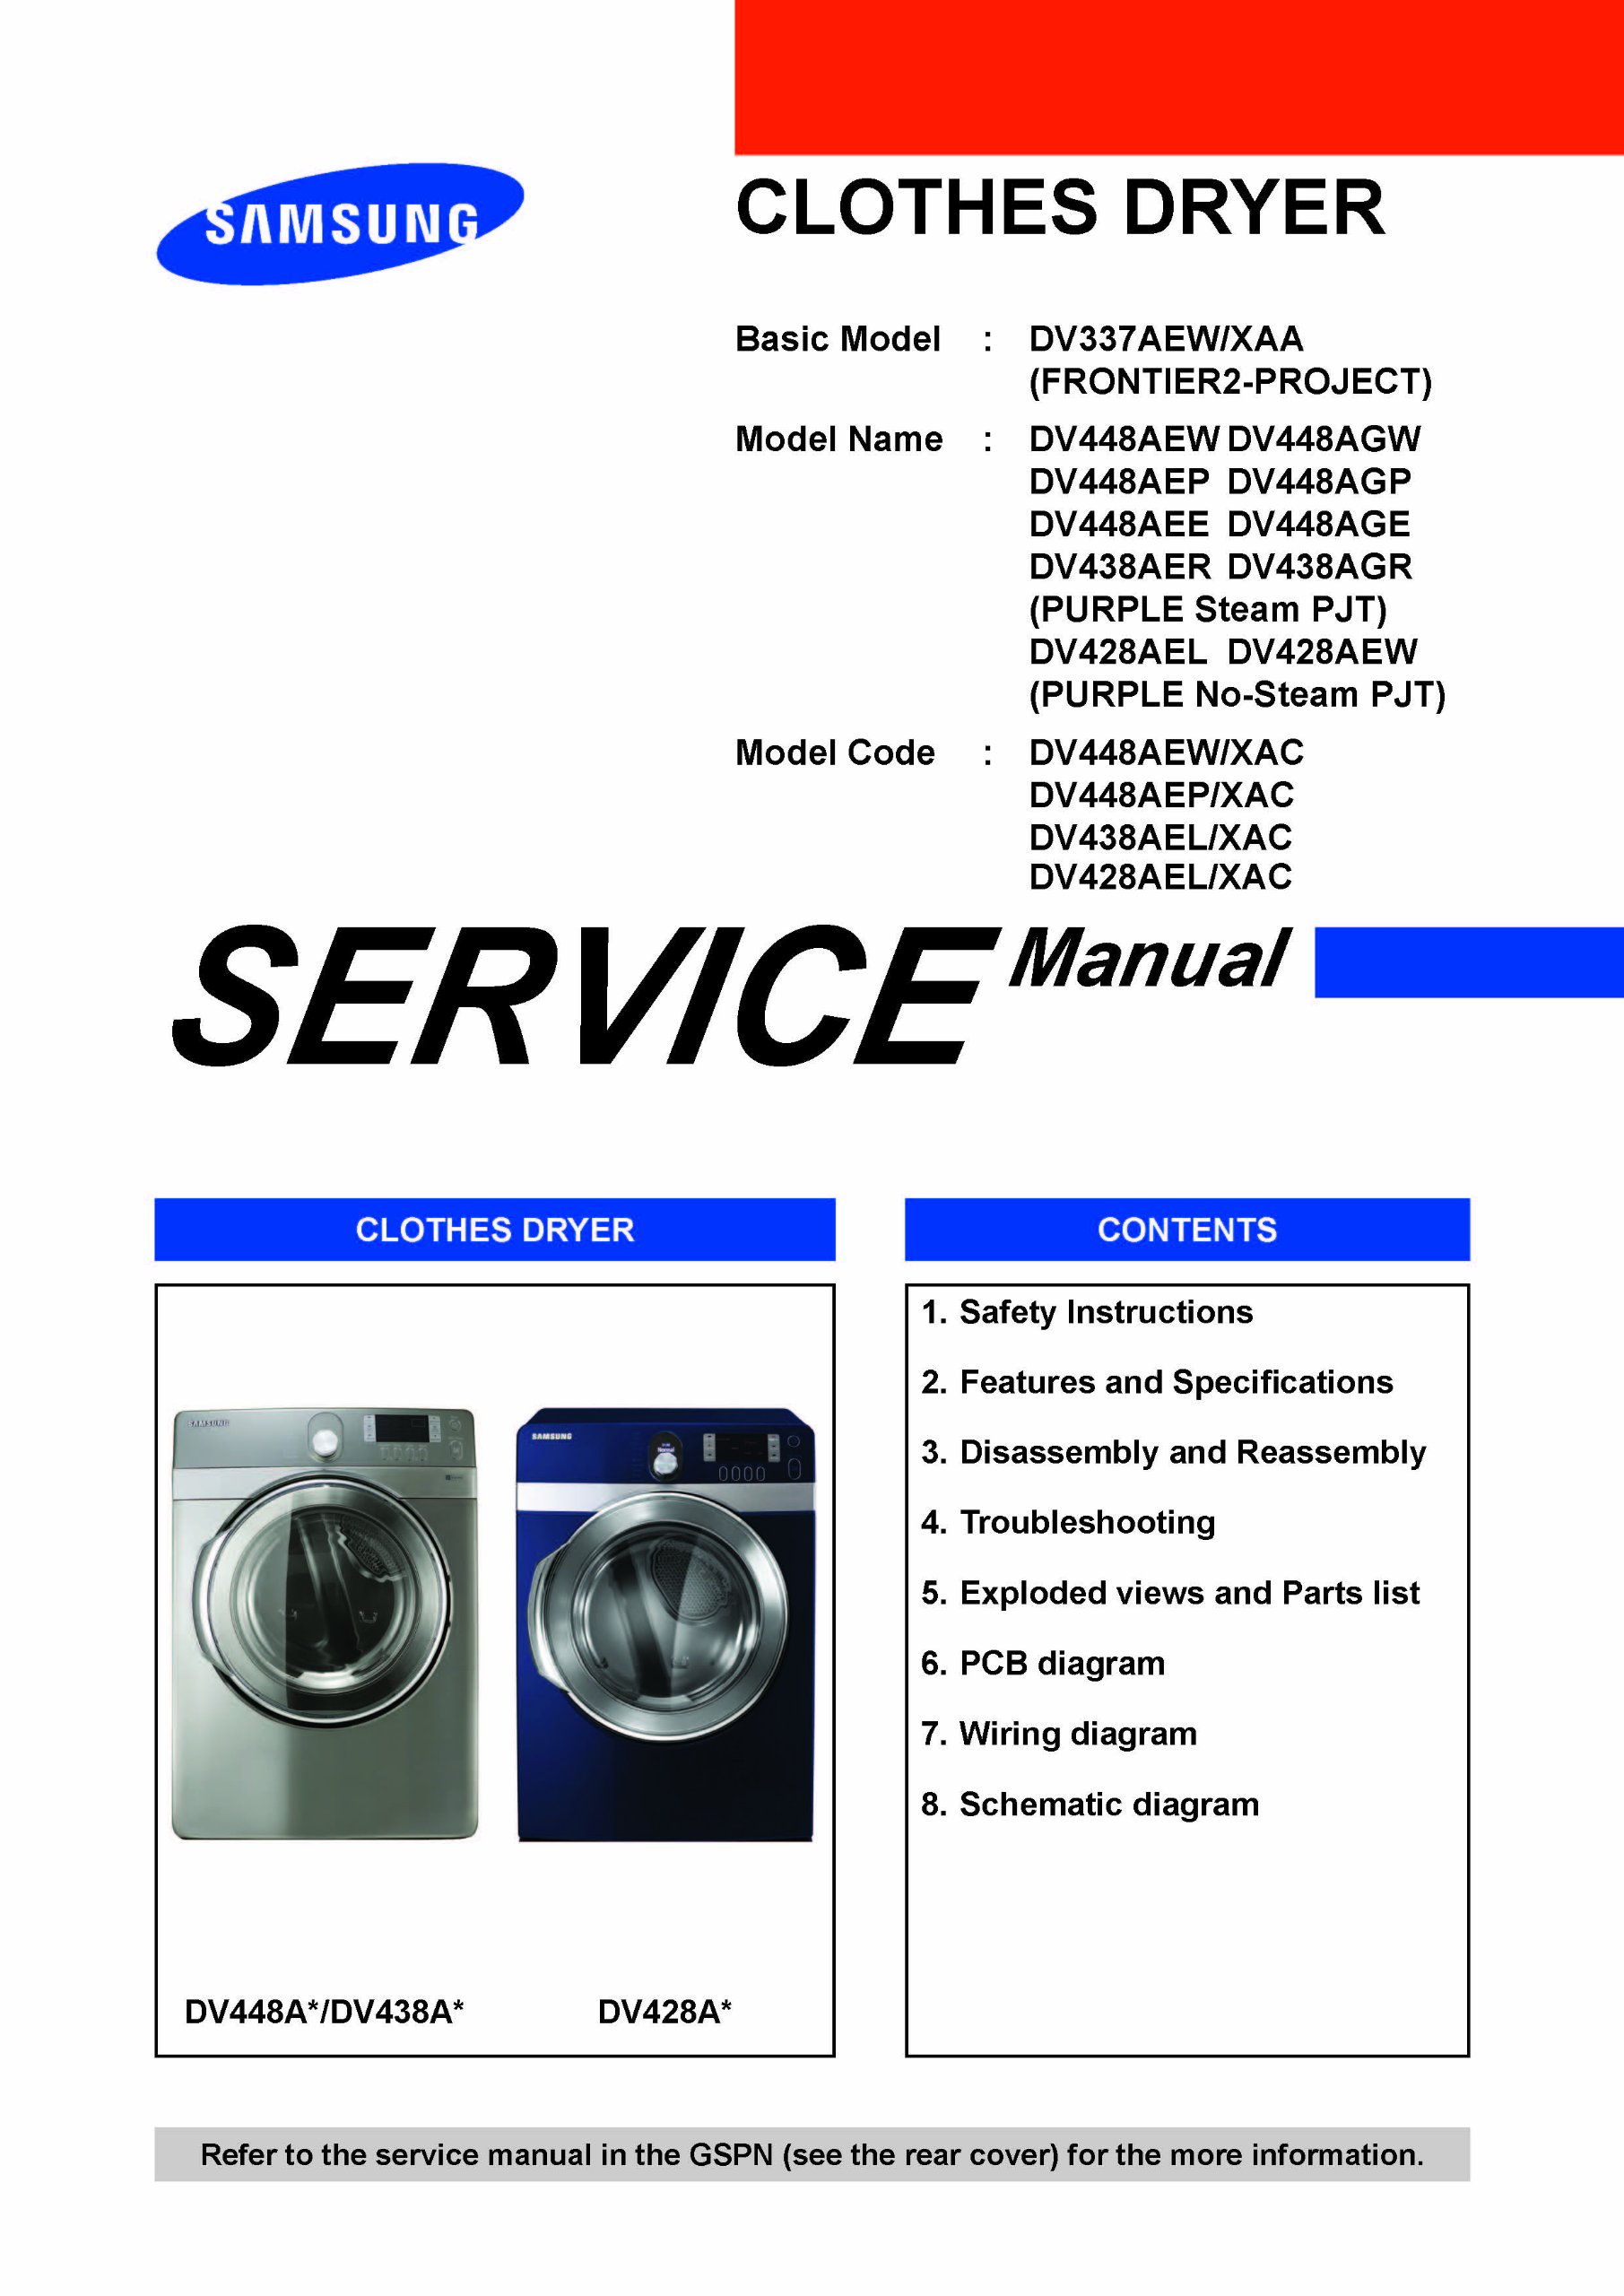 Samsung Dv448aep Xaa Service Manual Books Dryer Wiring Diagram